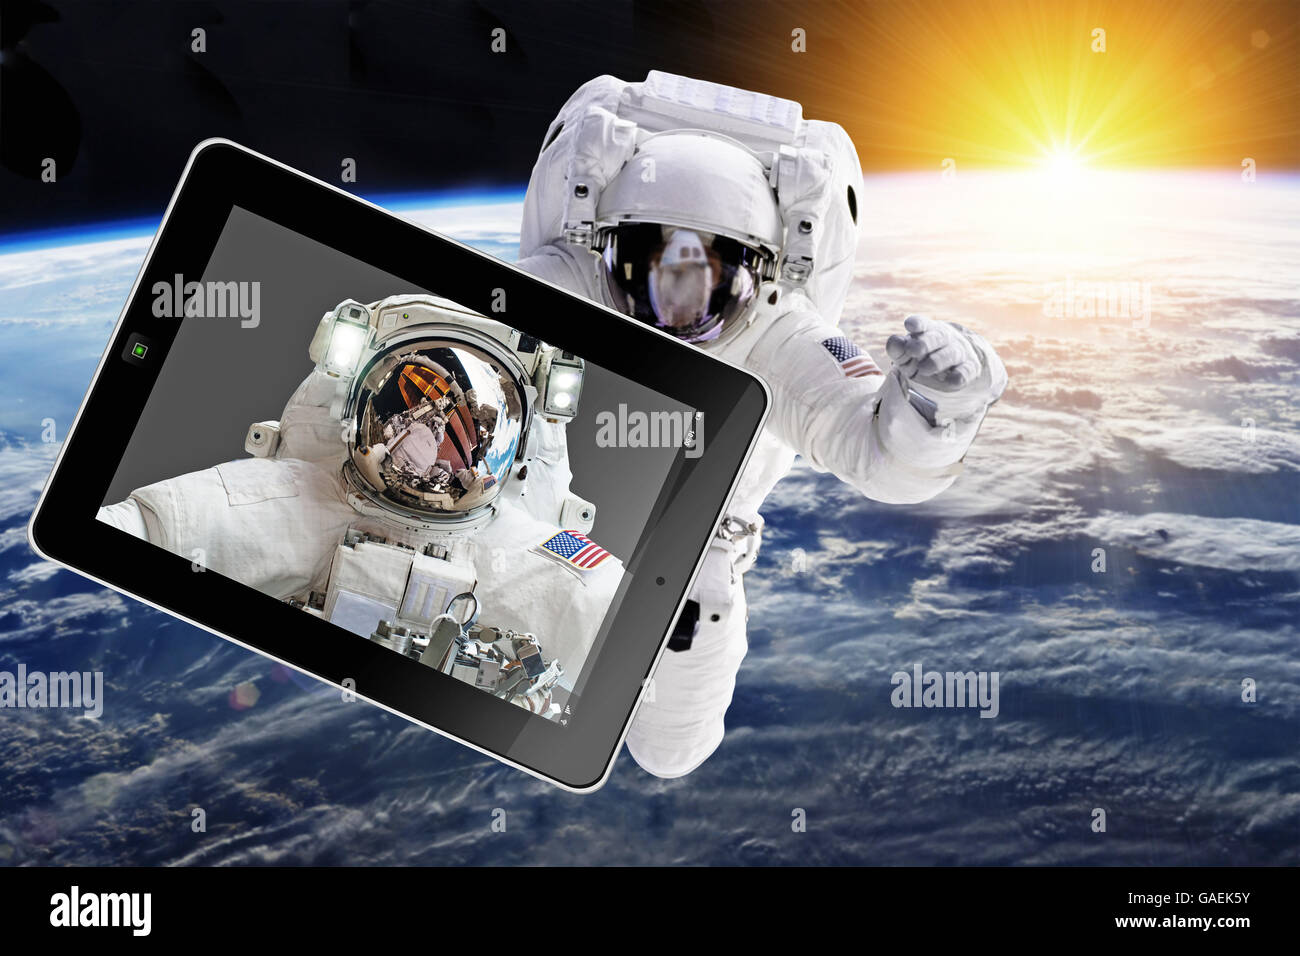 Astronaut in outer space with tablet - Elements of this image furnished by NASA - Stock Image